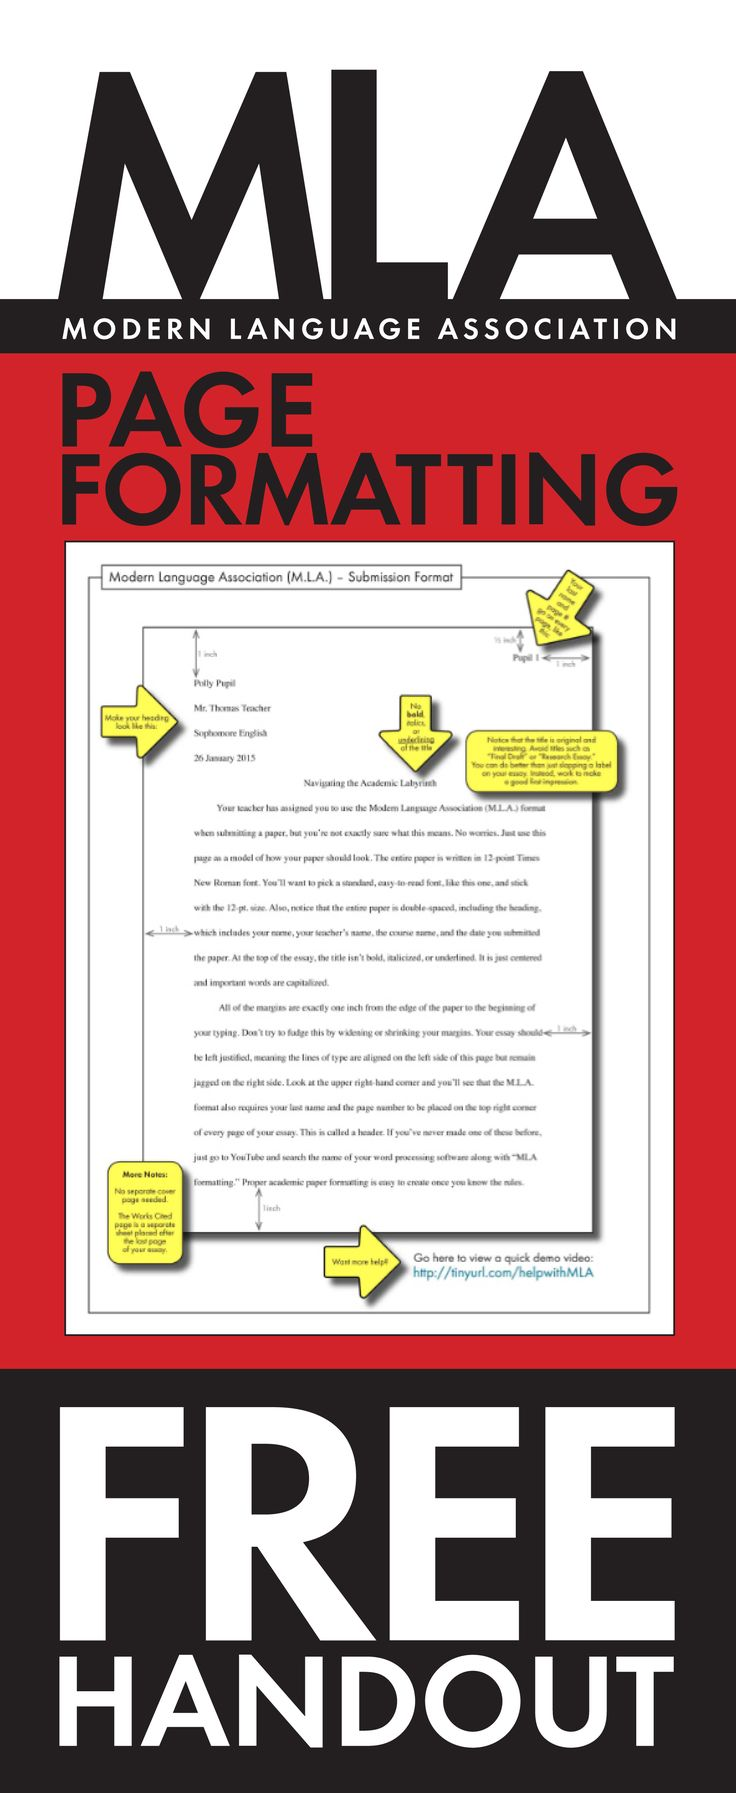 academic writing skills handout Passive voice is used quite often in scientific writing adding emphasis this handout provides information on visual and textual devices for adding emphasis to your writing including textual formatting using foreign languages in academic writing in english.